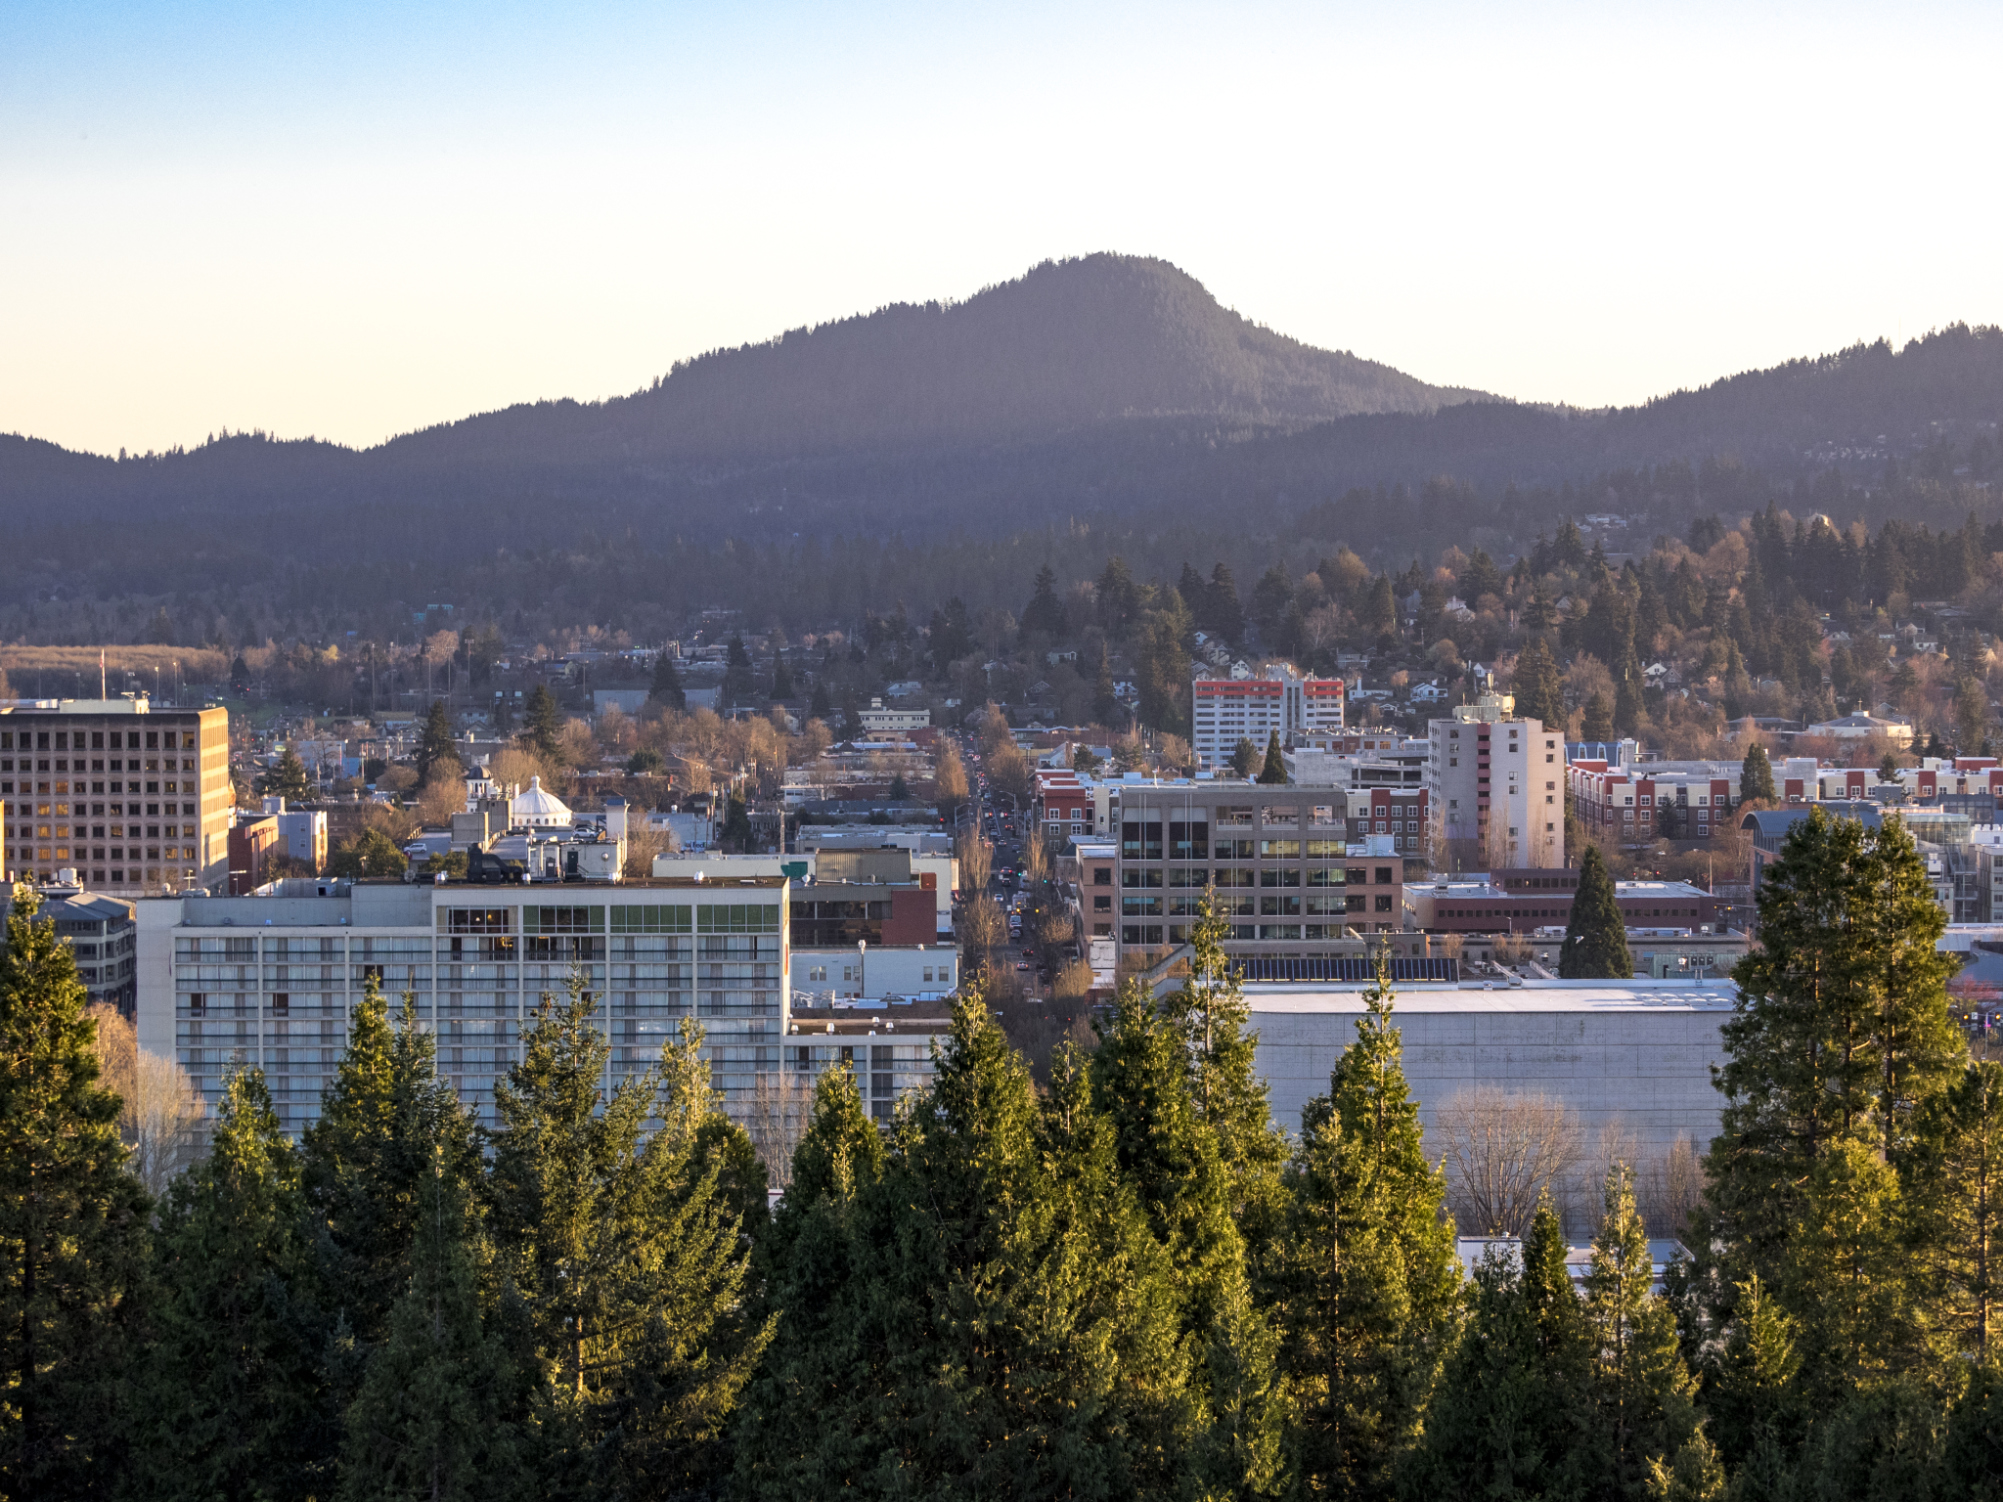 A view of downtown Eugene, Oregon. Taken in the afternoon from Skinner Butte.